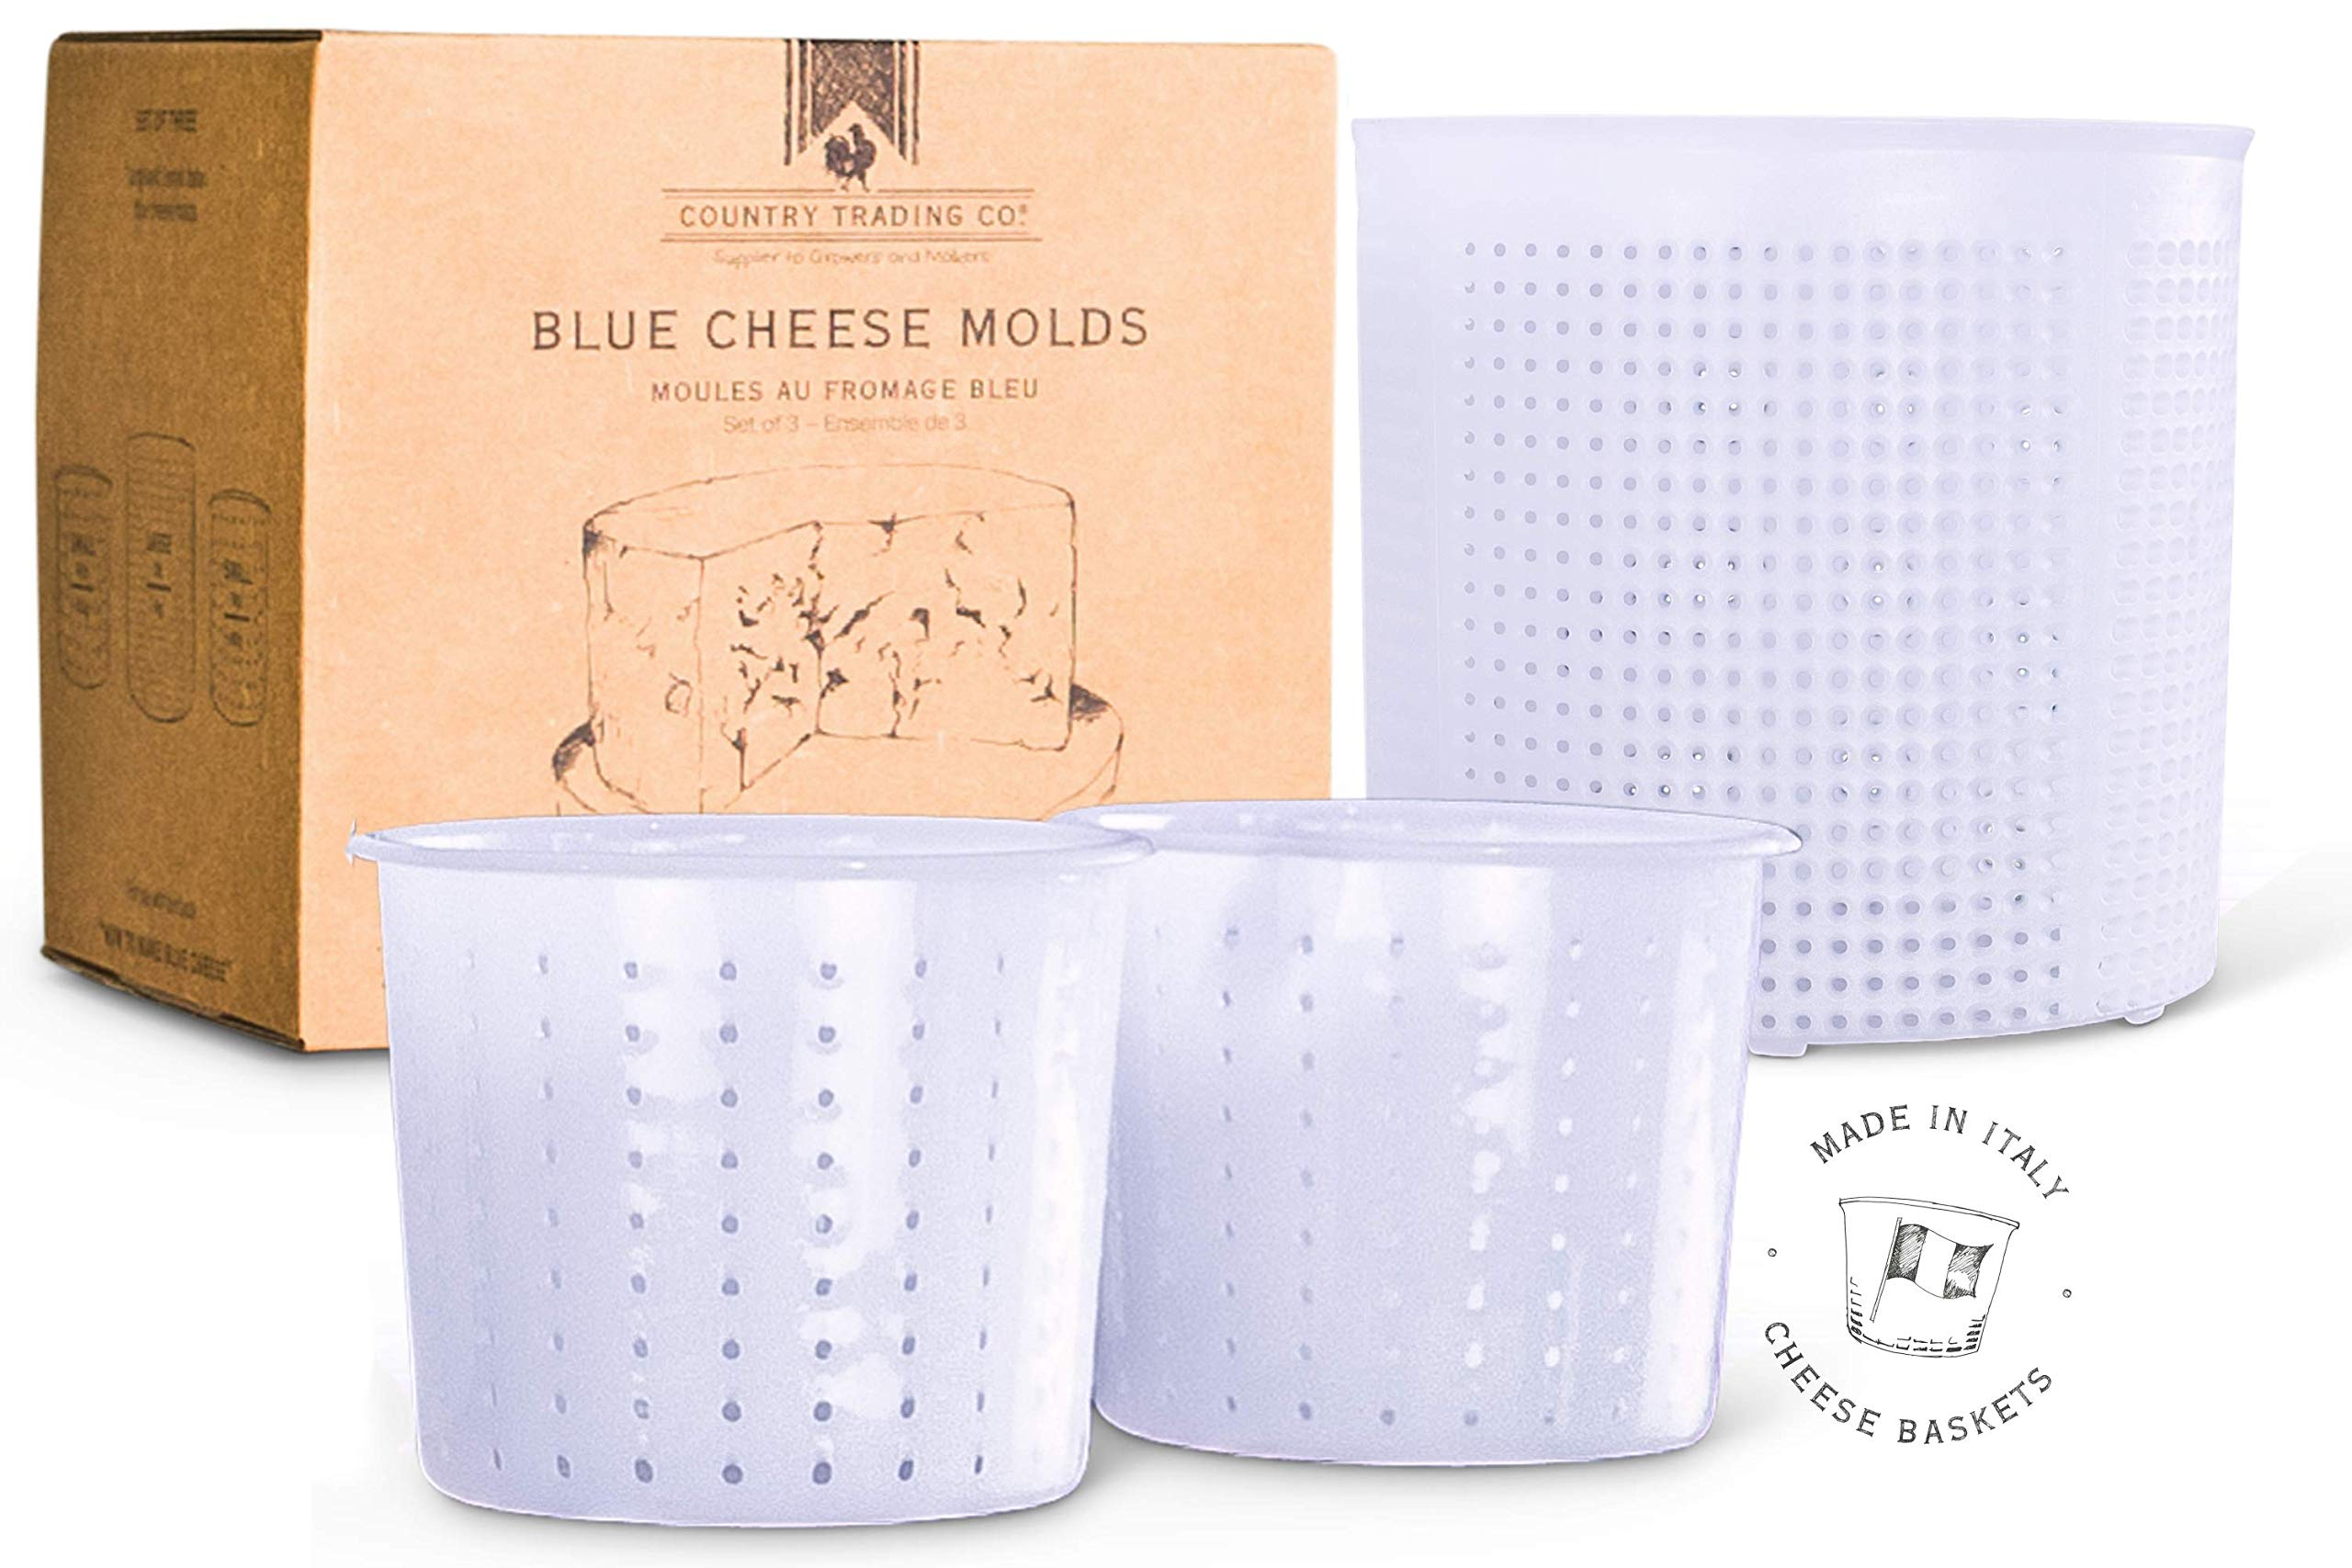 Cheese Molds Set of 3 for Making Blue and Hard Cheeses at Home - Quality Italian Baskets to Make Gorgonzola Colby Gouda Cheddar or DIY Organic Vegan Nut Cheese Maker